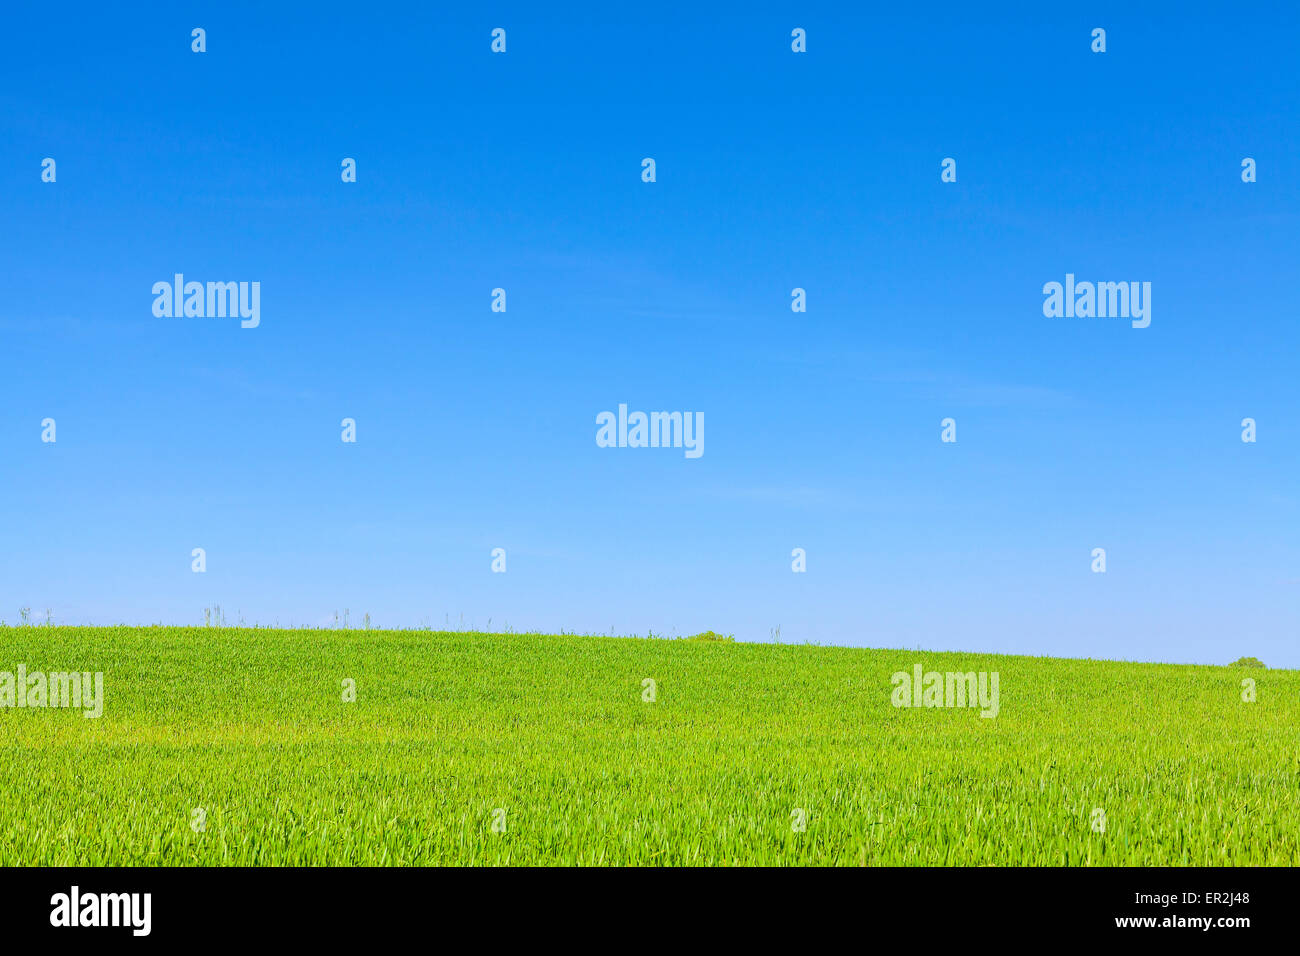 Green field and cloudless blue sky, nature background with space for text. - Stock Image